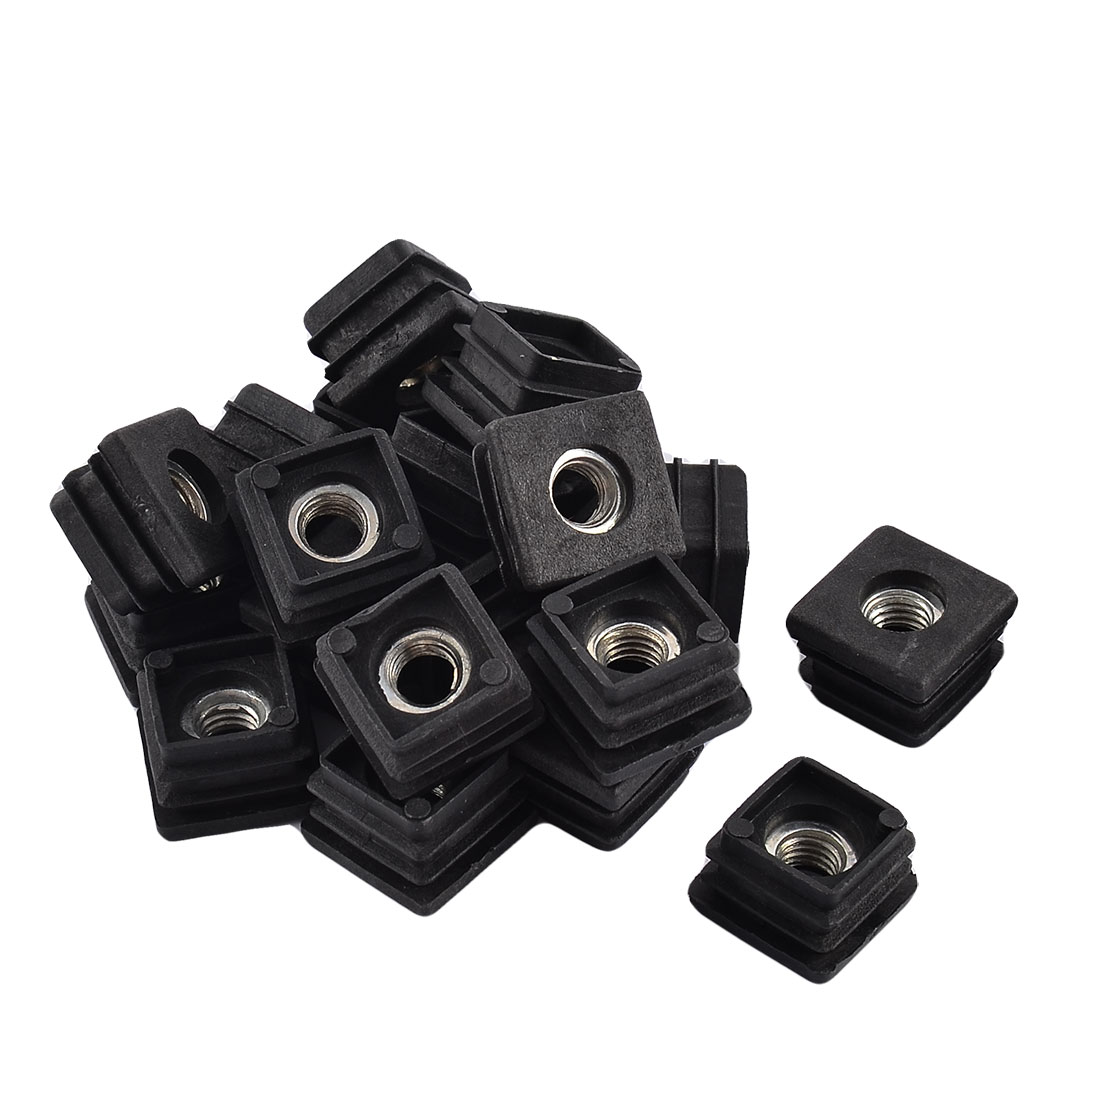 Office Plastic Square Shaped Furniture Table Feet Pipe Tube Nut Insert Black 20 Pcs